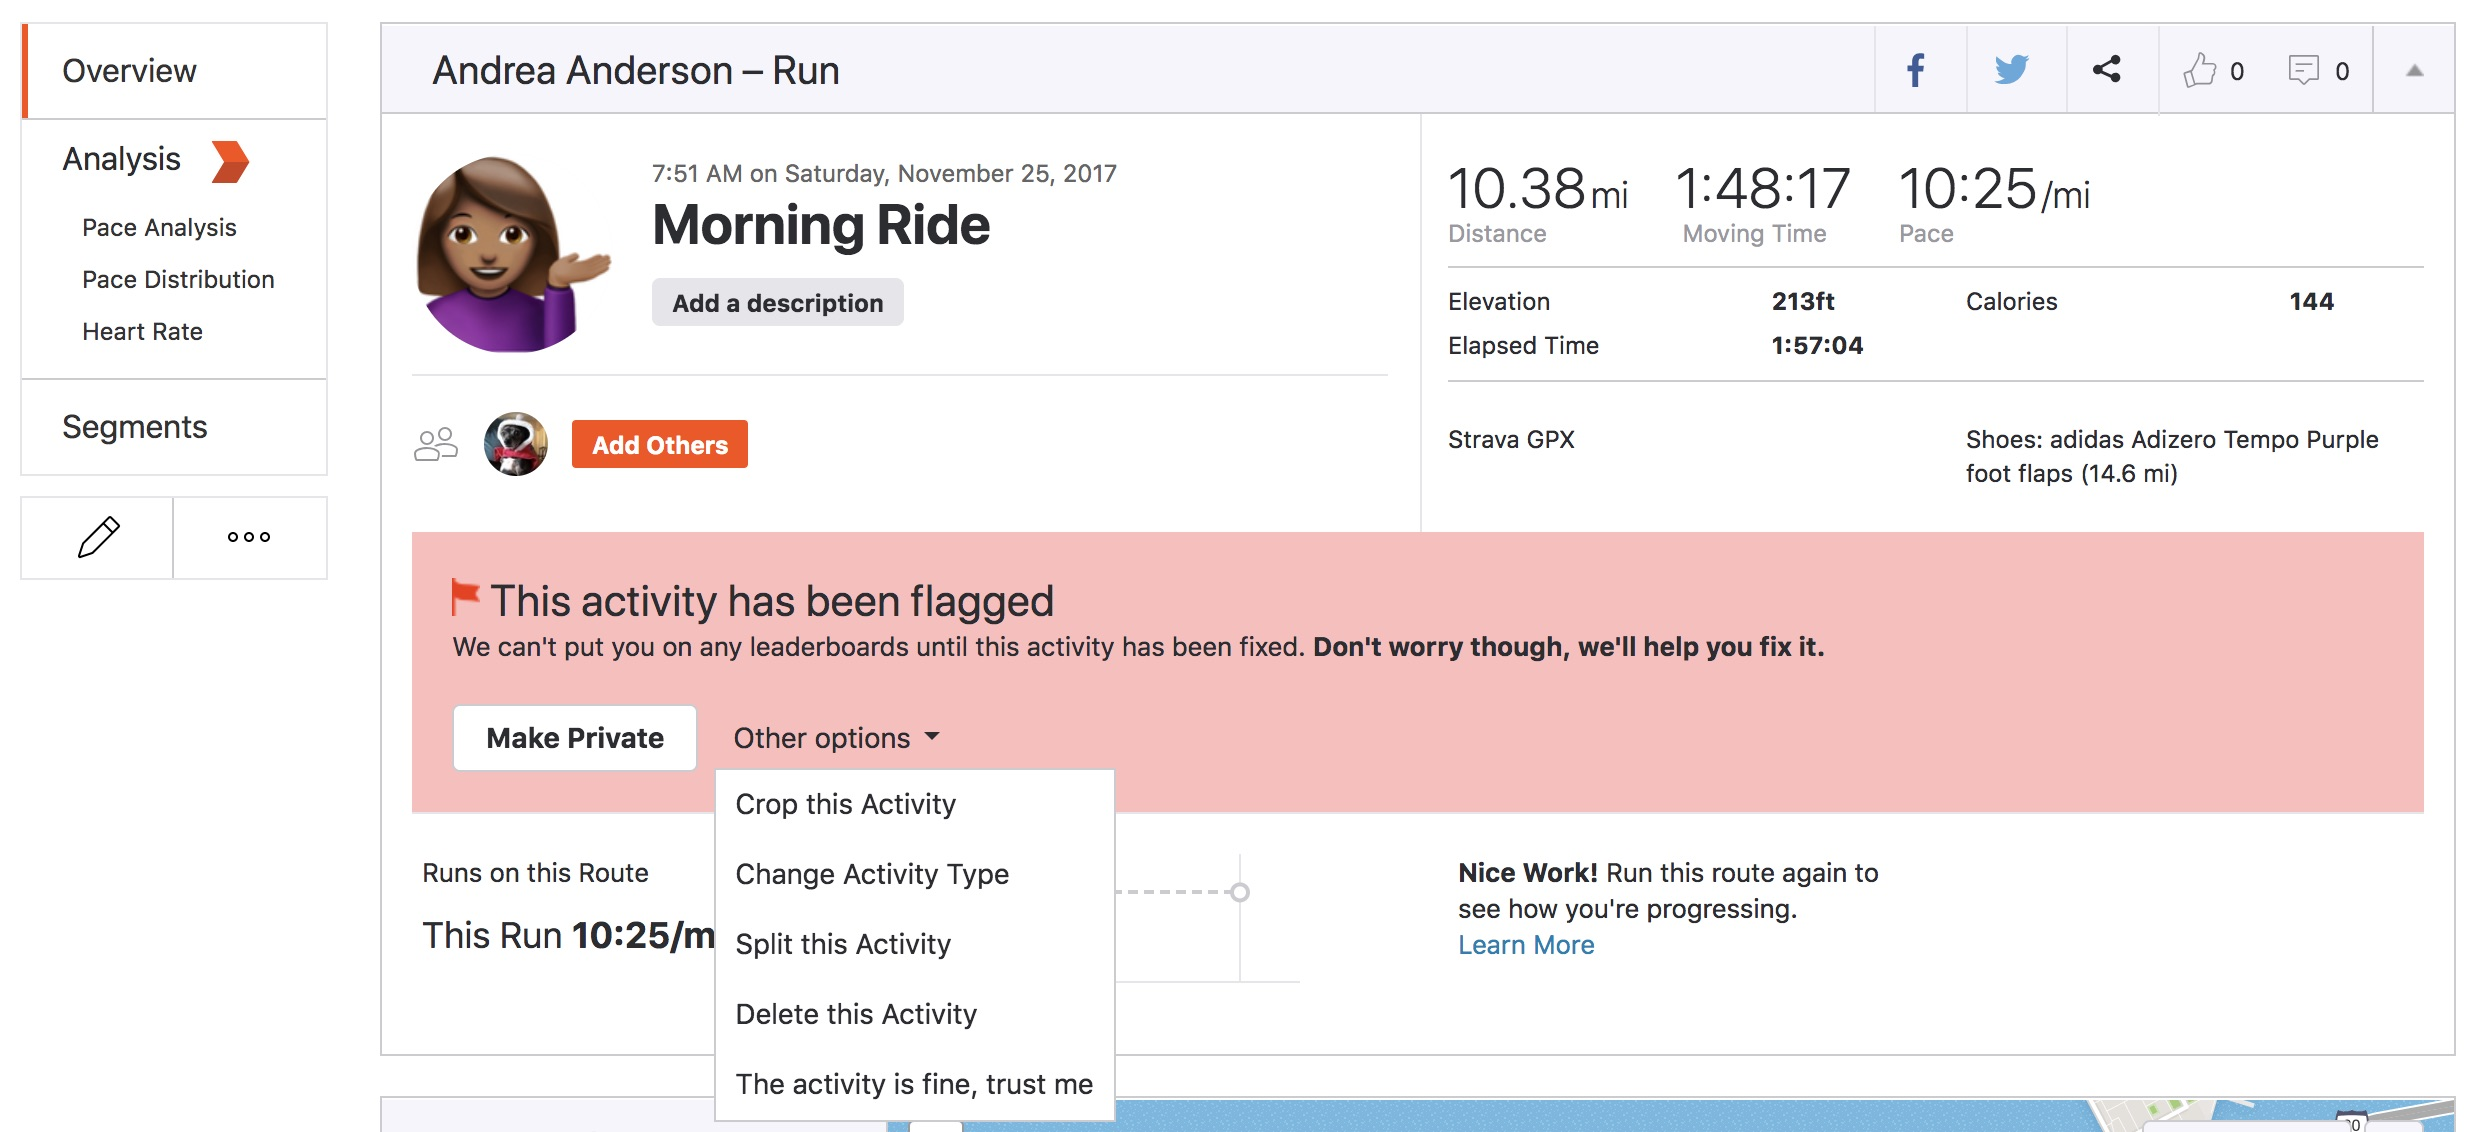 Morning_Ride___Run___Strava.jpg